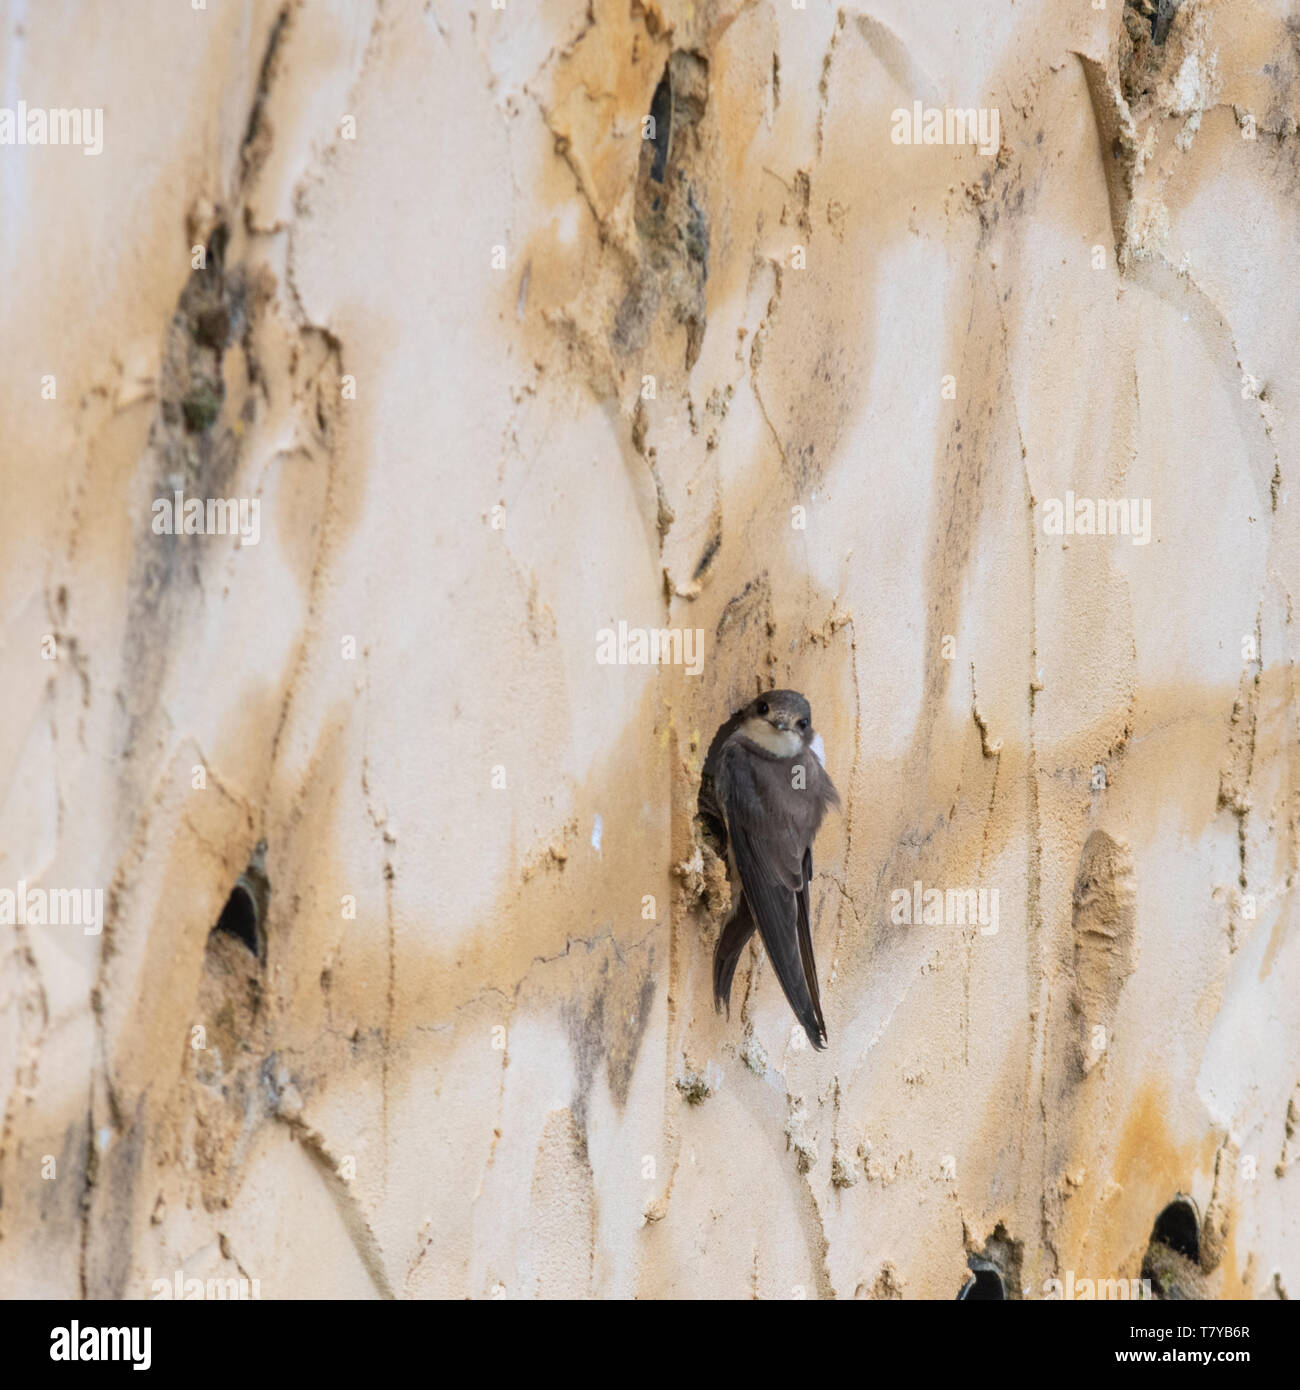 Sand martin (Riparia riparia) bird at its nest hole in an artificial nesting bank or wall, Blashford Lakes nature reserve in Hampshire, UK - Stock Image